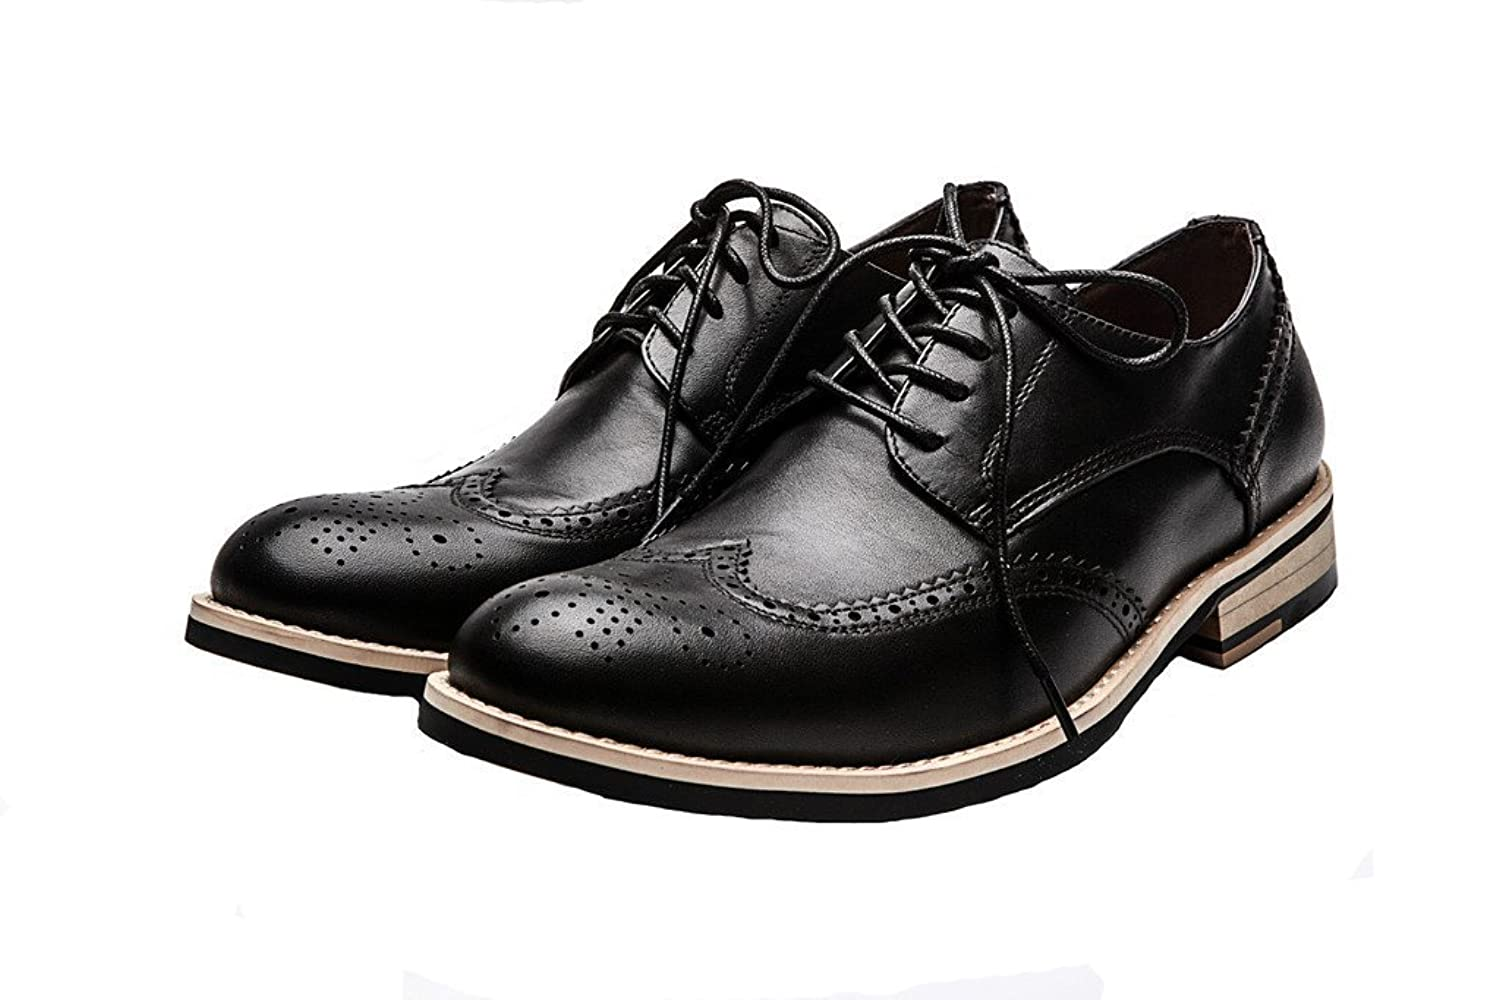 Durable Modeling DeliverSmile Menu0026#39;s Brown Lace Up Wing Tip Perforated Oxford Dress Shoes ...